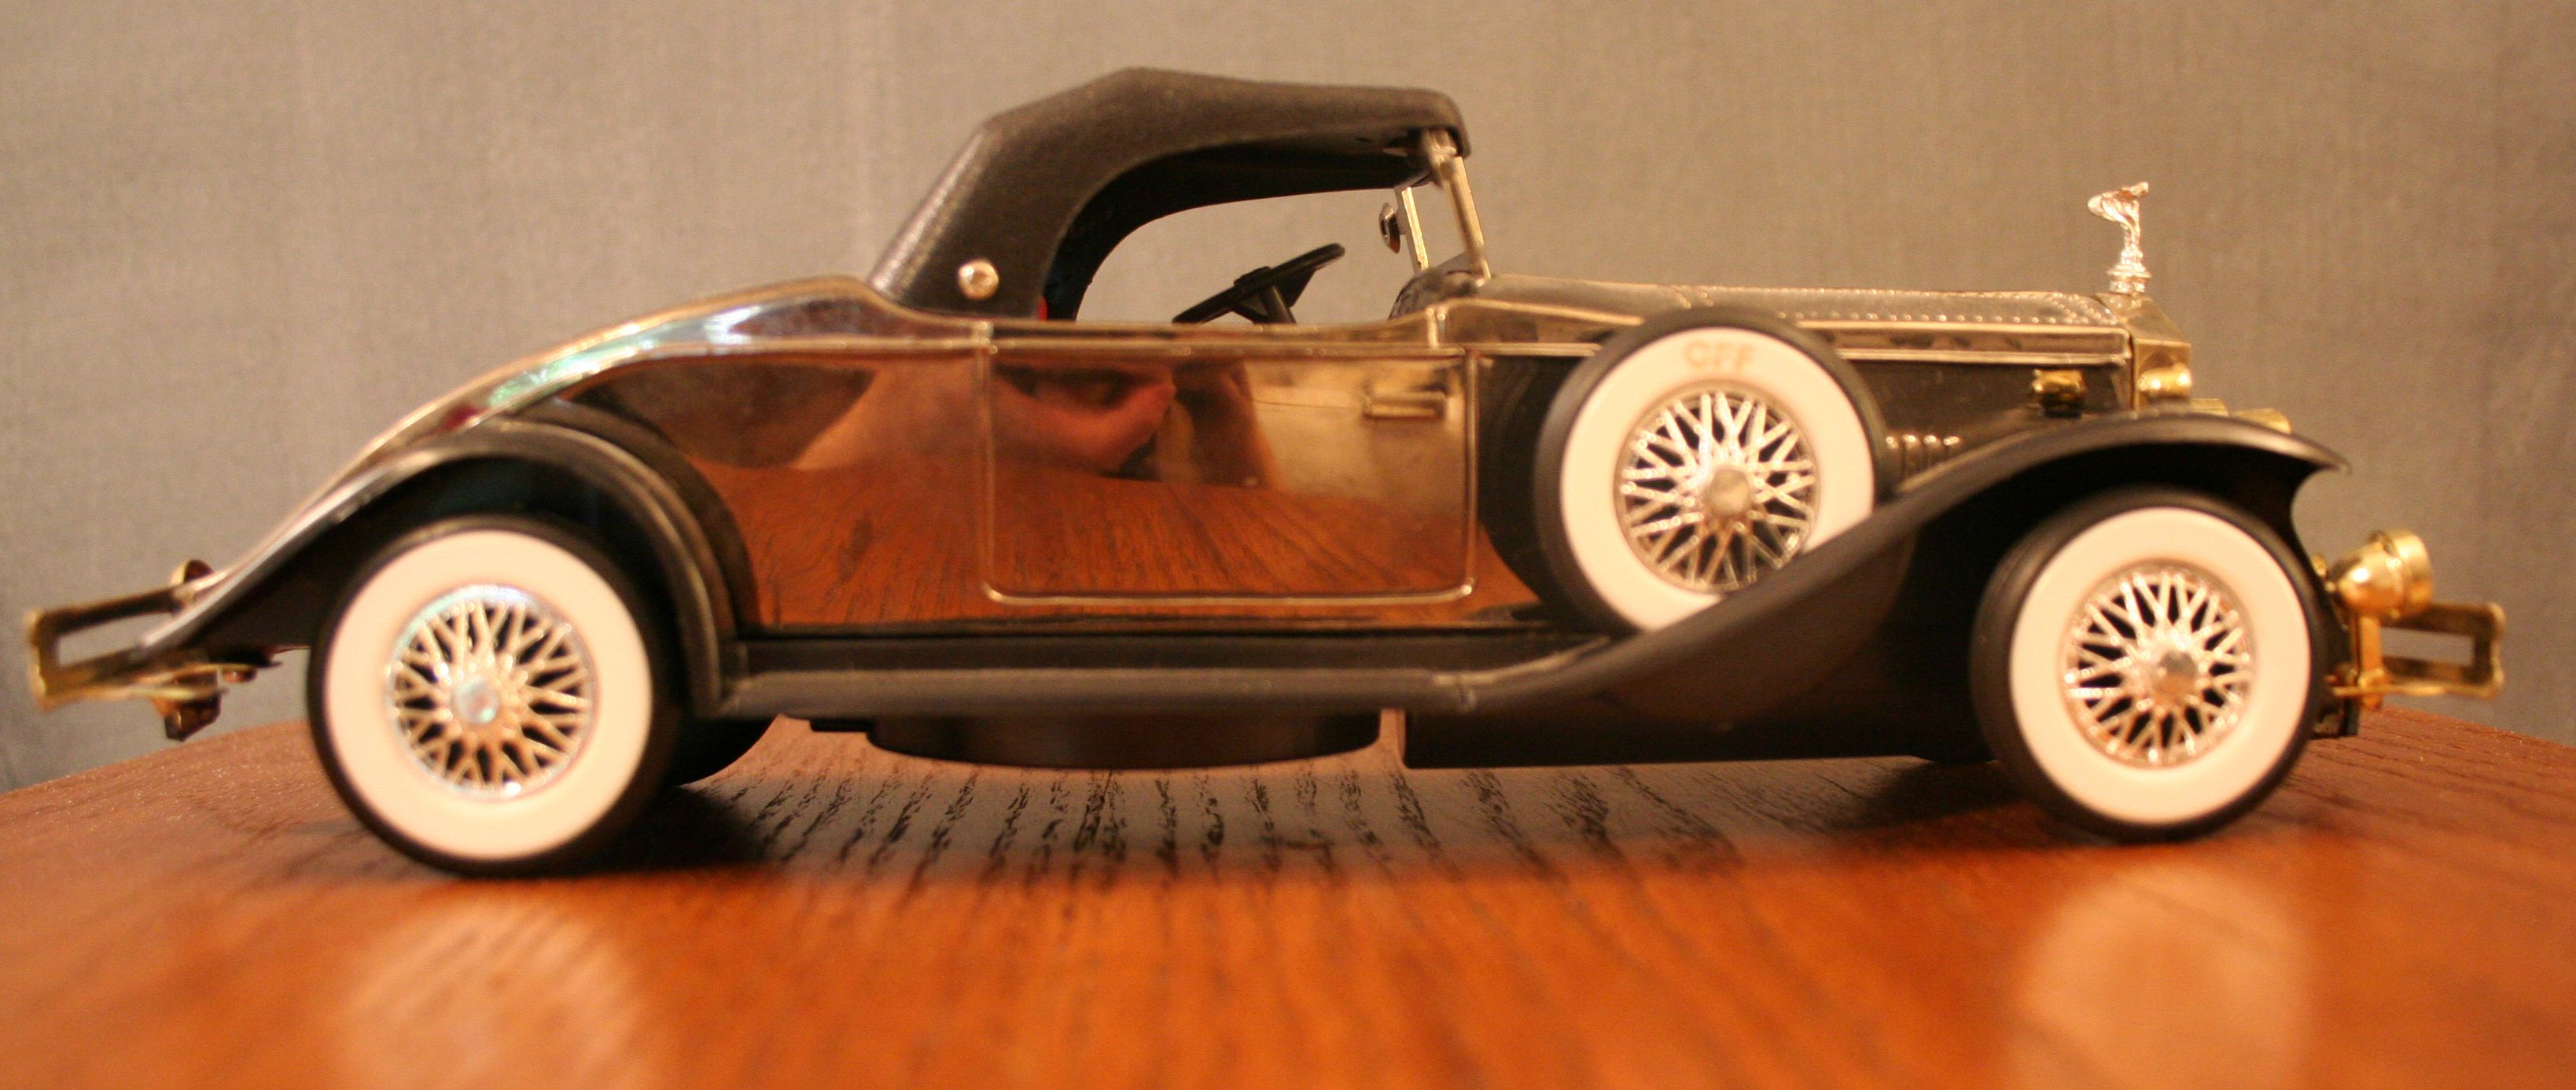 vintage car side - Google Search | vintage vehicles | Pinterest ...